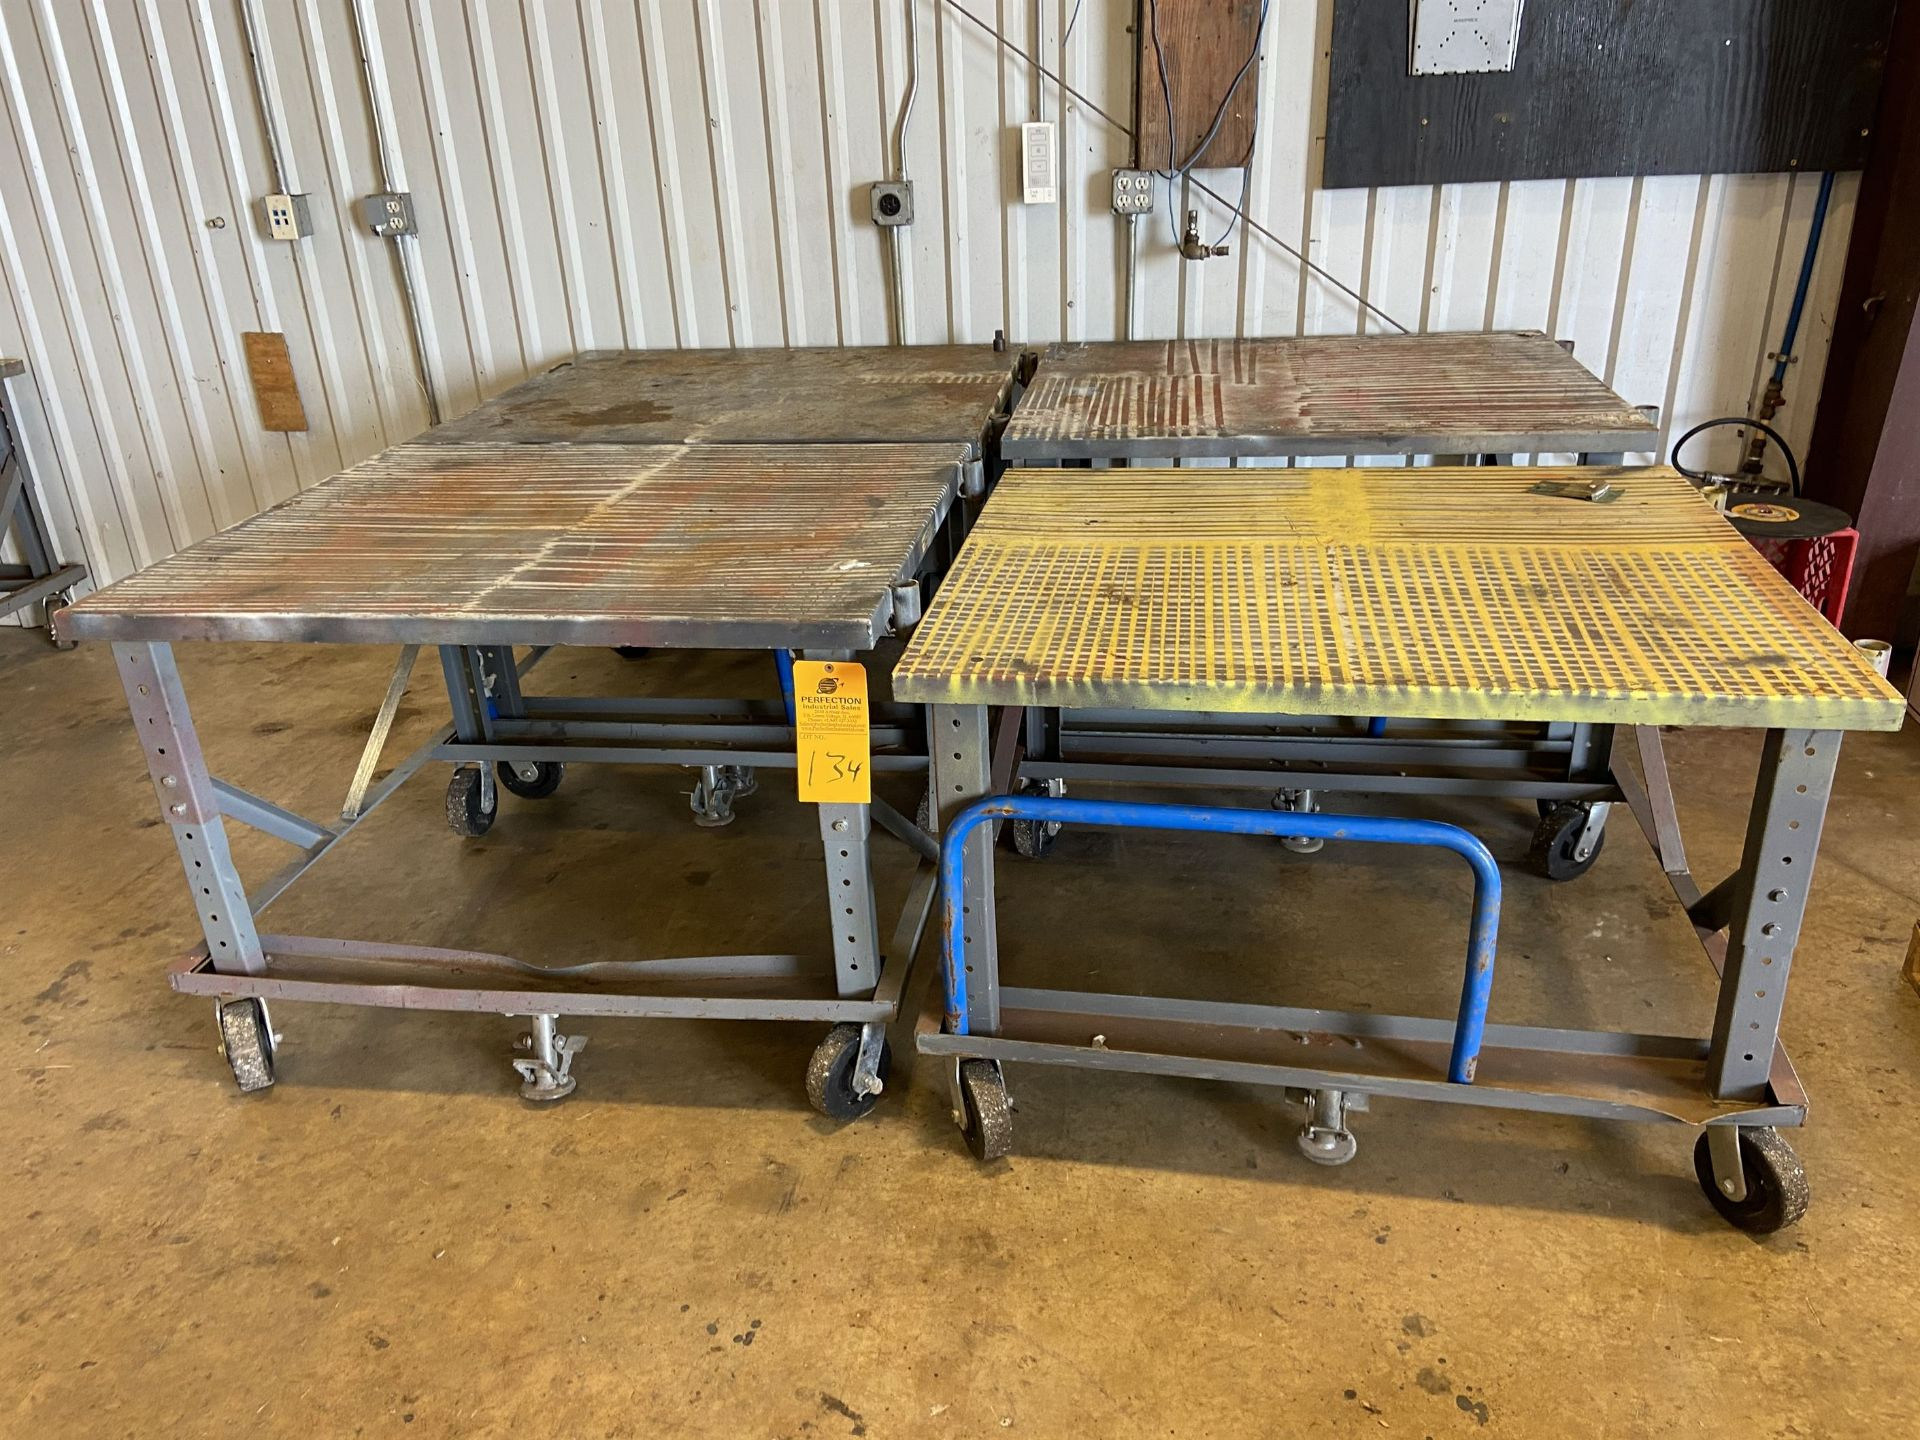 Lot of (4) Roll Around Shop Carts